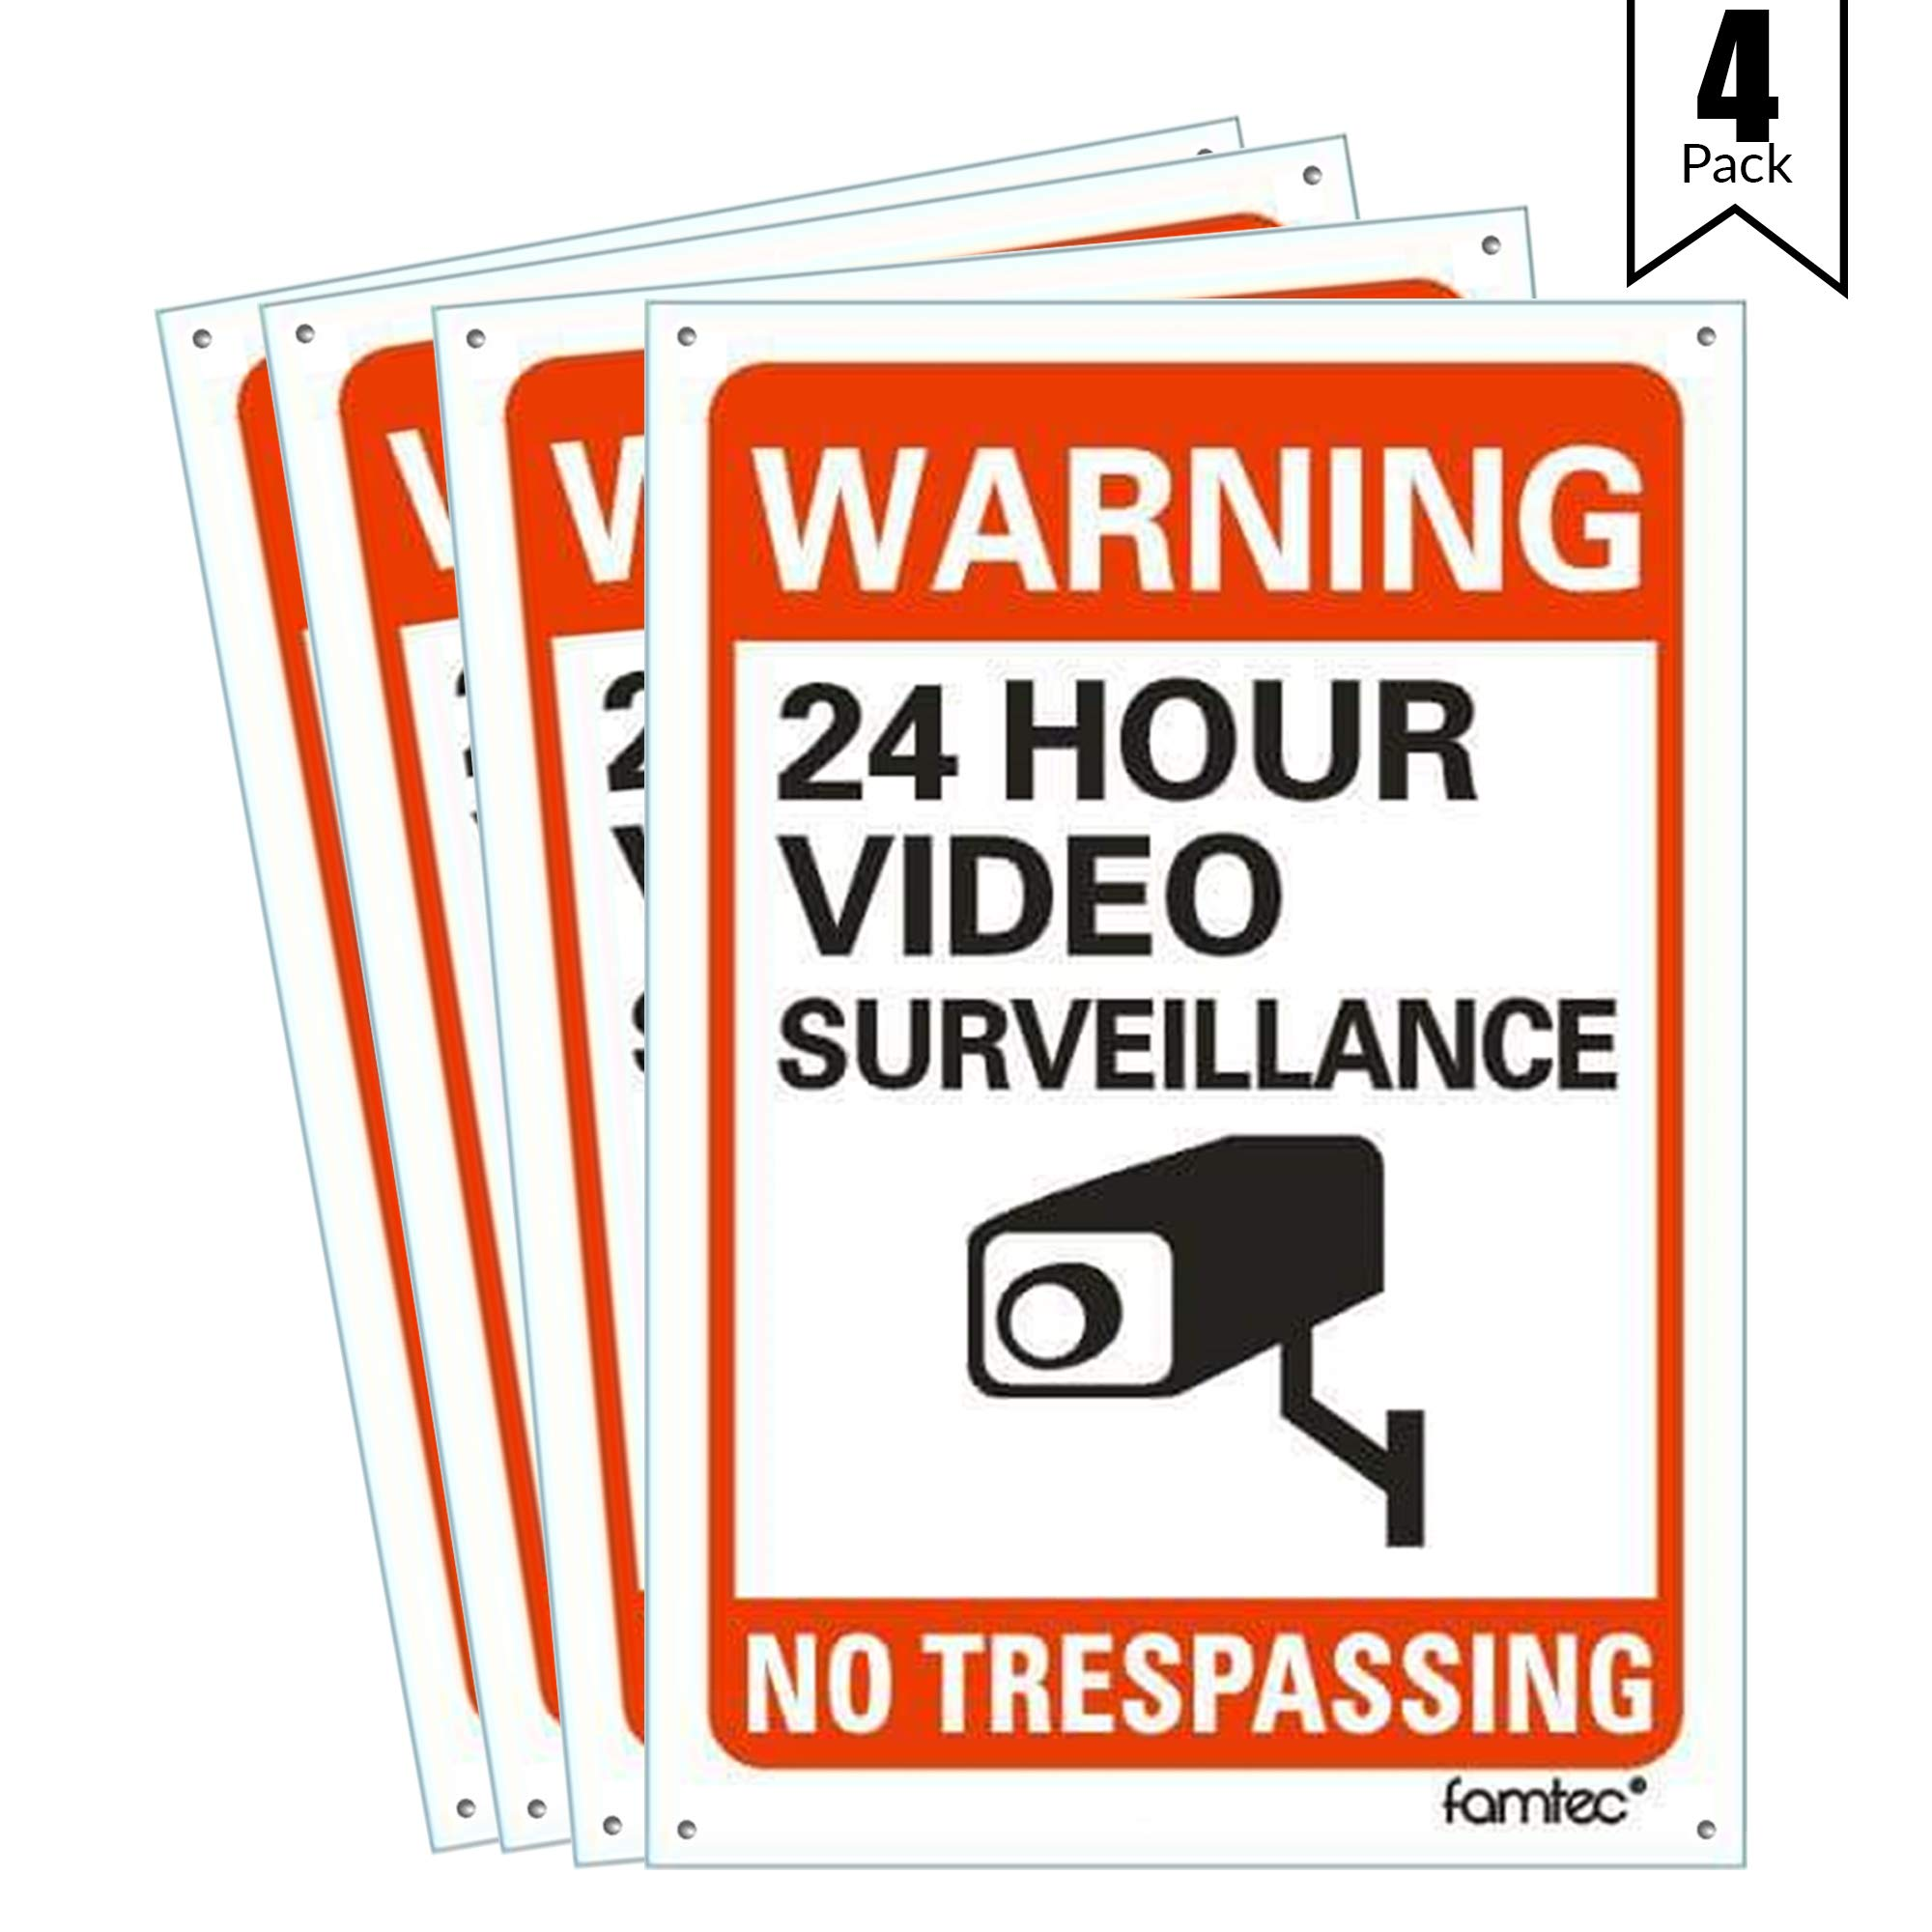 Famtec Video Surveillance Sign Outdoor Warning Sign | 7''x 10'' Aluminum | Indoor Outdoor | Home Business CCTV Security Camera | Waterproof UV Protected | Red | 7x10, Red | Reflective | 4 Pack by Famtec (Image #1)